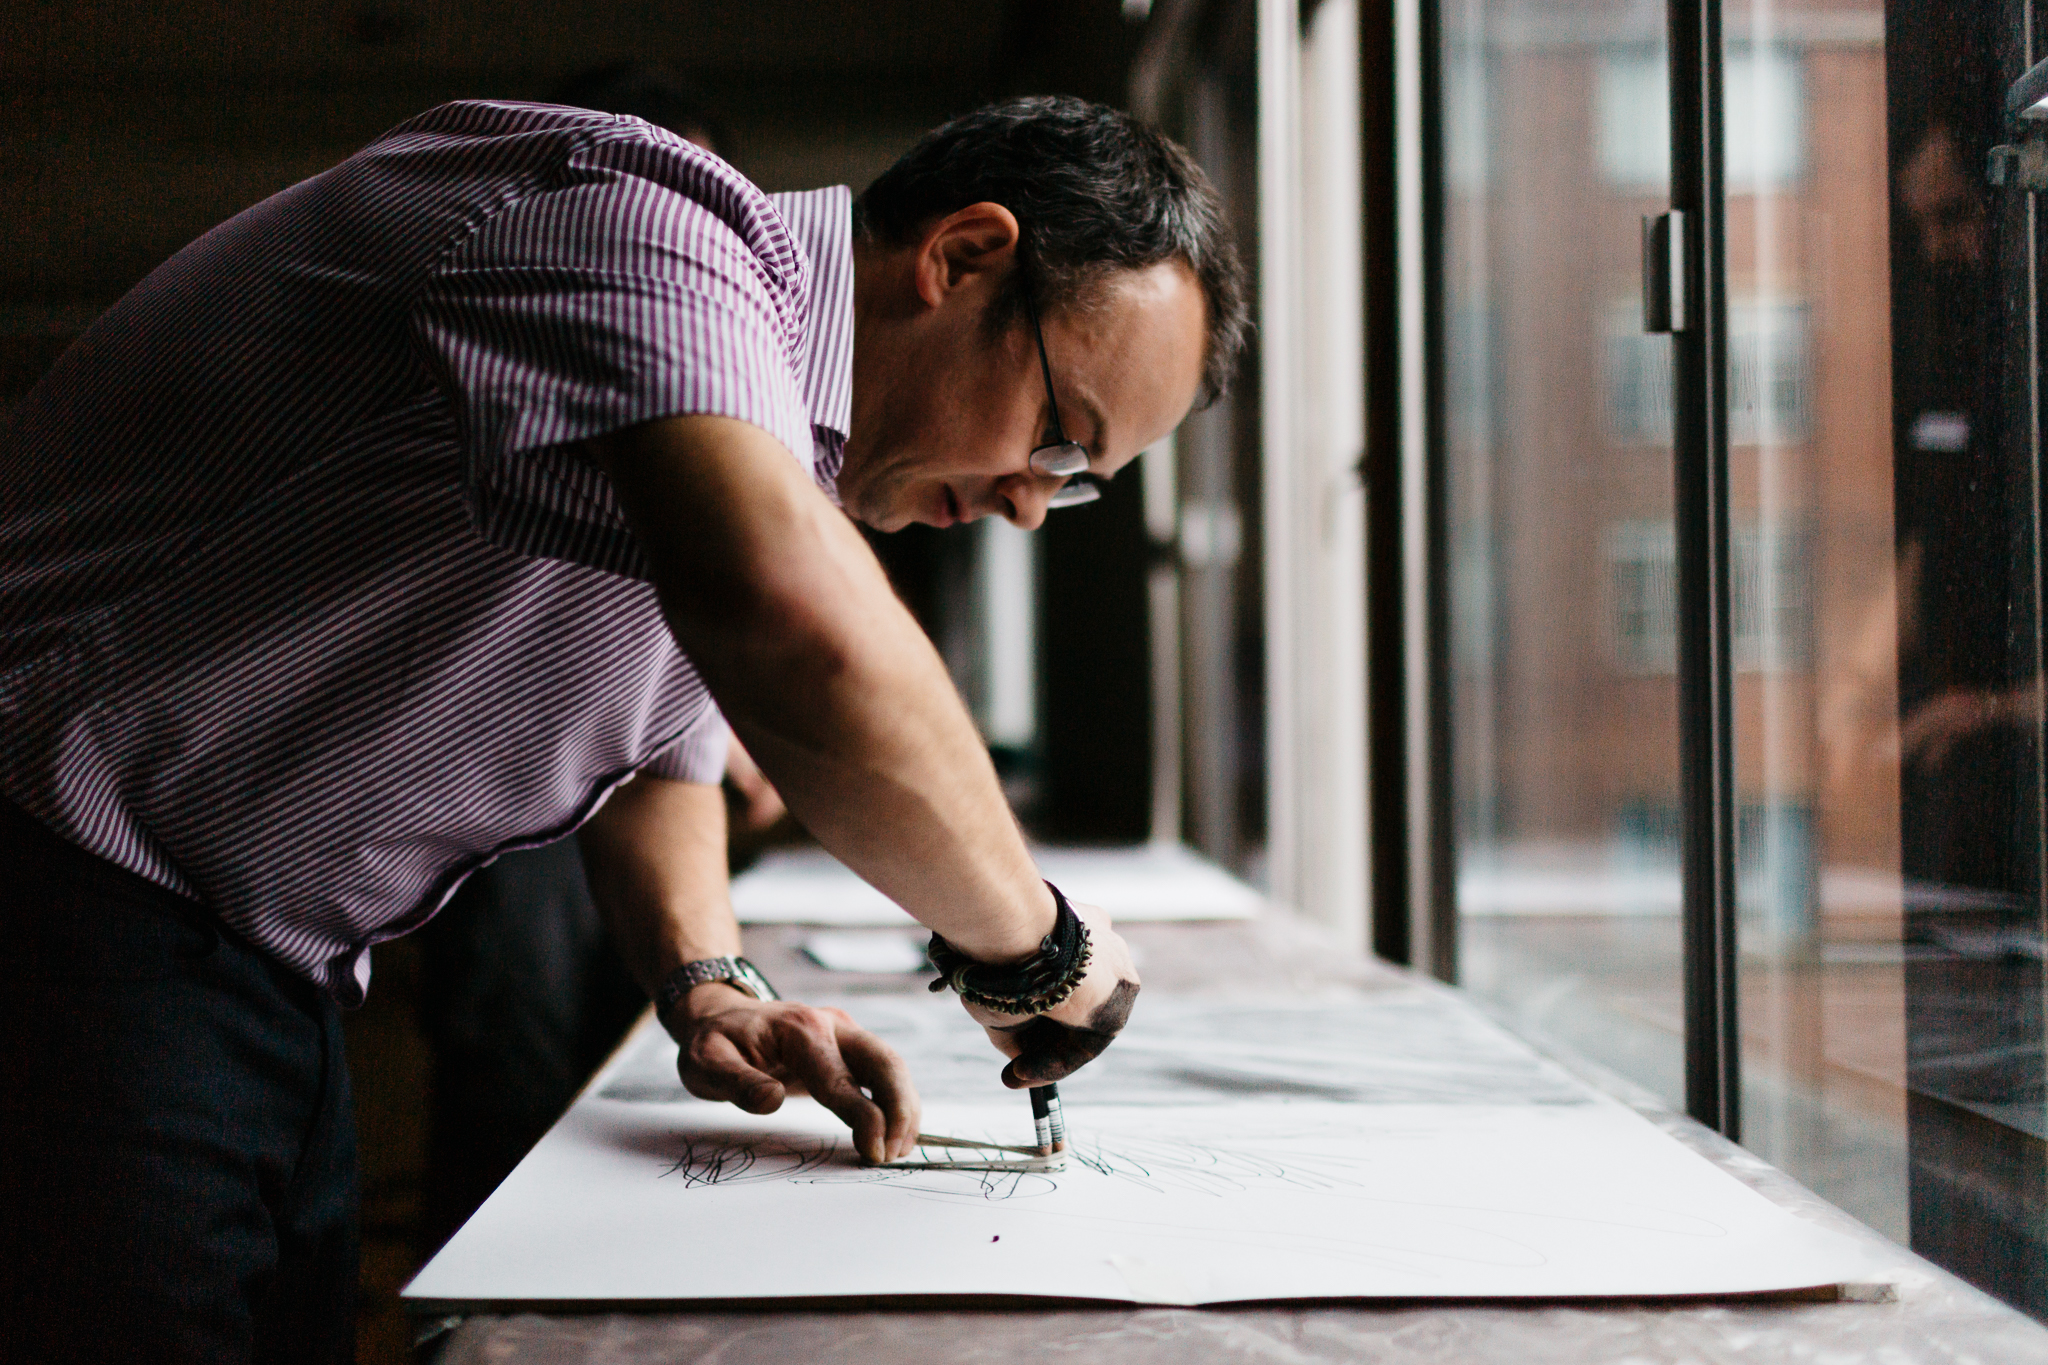 man drawing infront of window